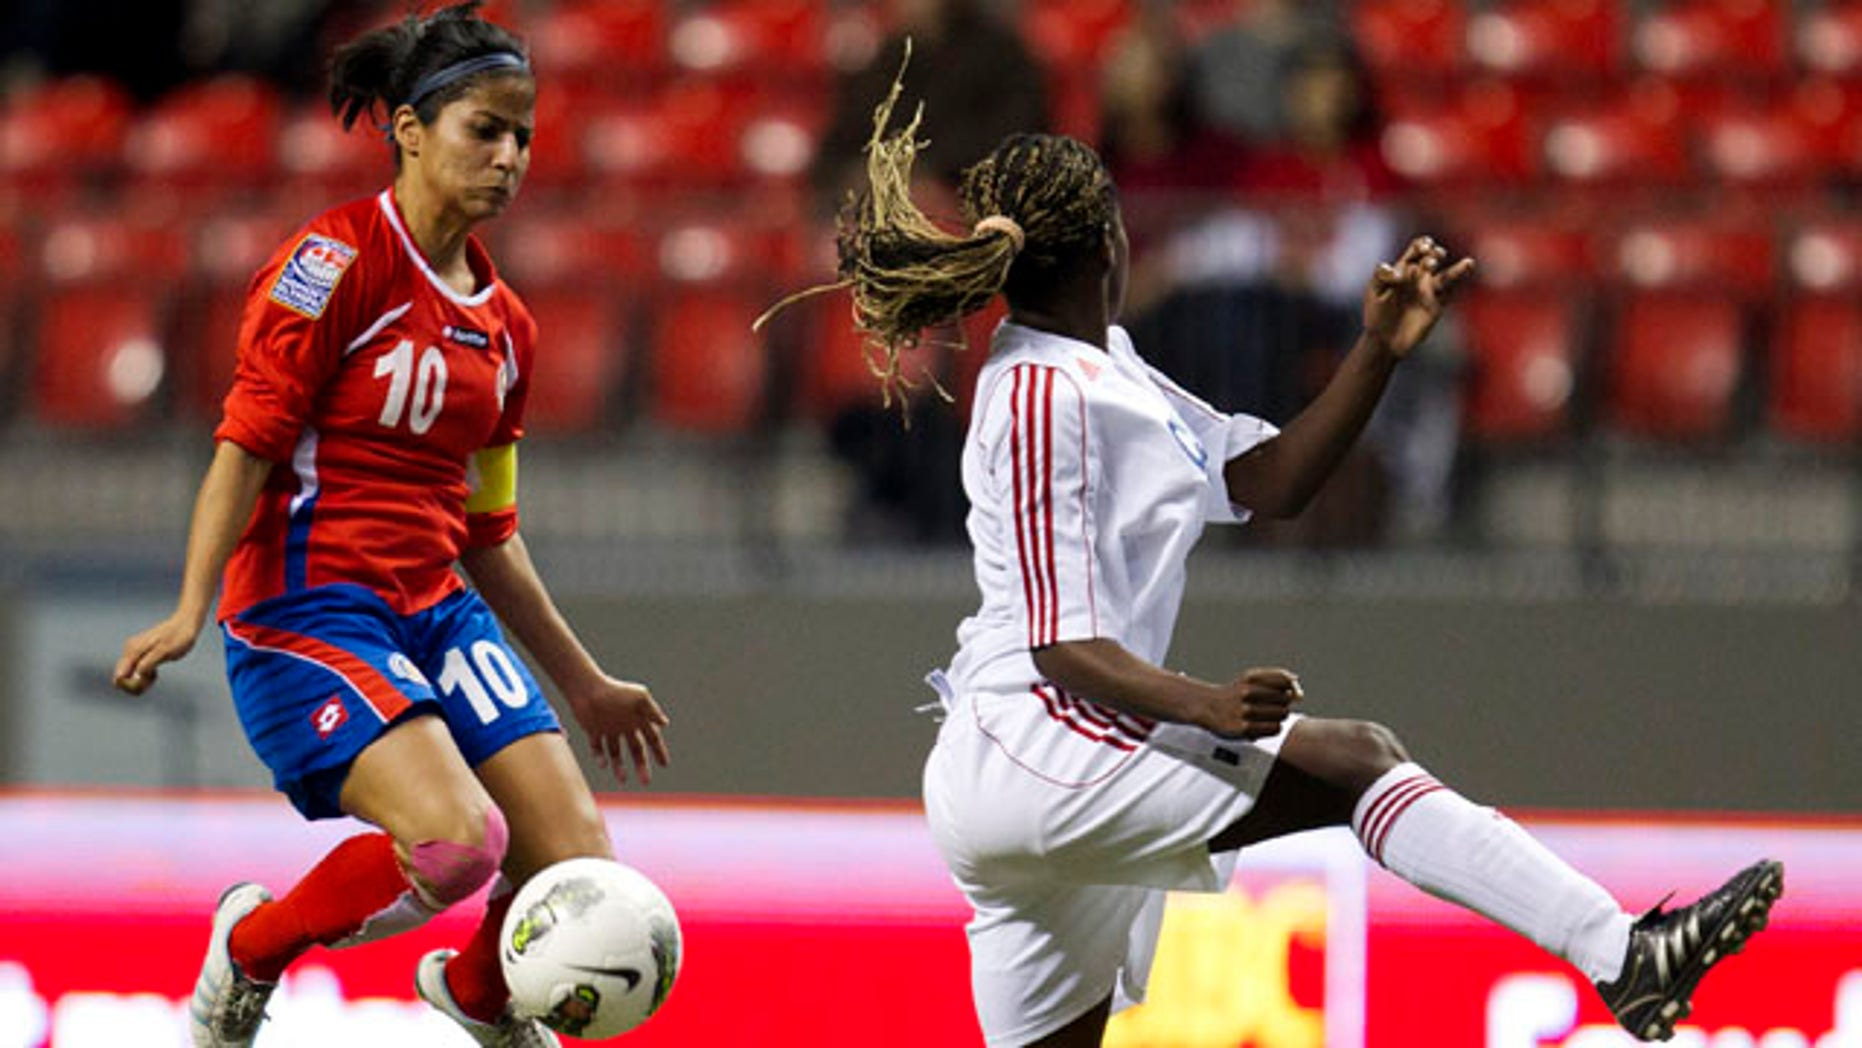 Costa Rica's Shirley Cruz (10) blocks a kick from Cuba's Jessica Alvarez Pupo, right in CONCACAF Women's Olympic qualifying soccer in Vancouver, British Columbia, Thursday, Jan. 19, 2012. Costa Rica won 2-0. (AP Photo/The Canadian Press, Jonathan Hayward)